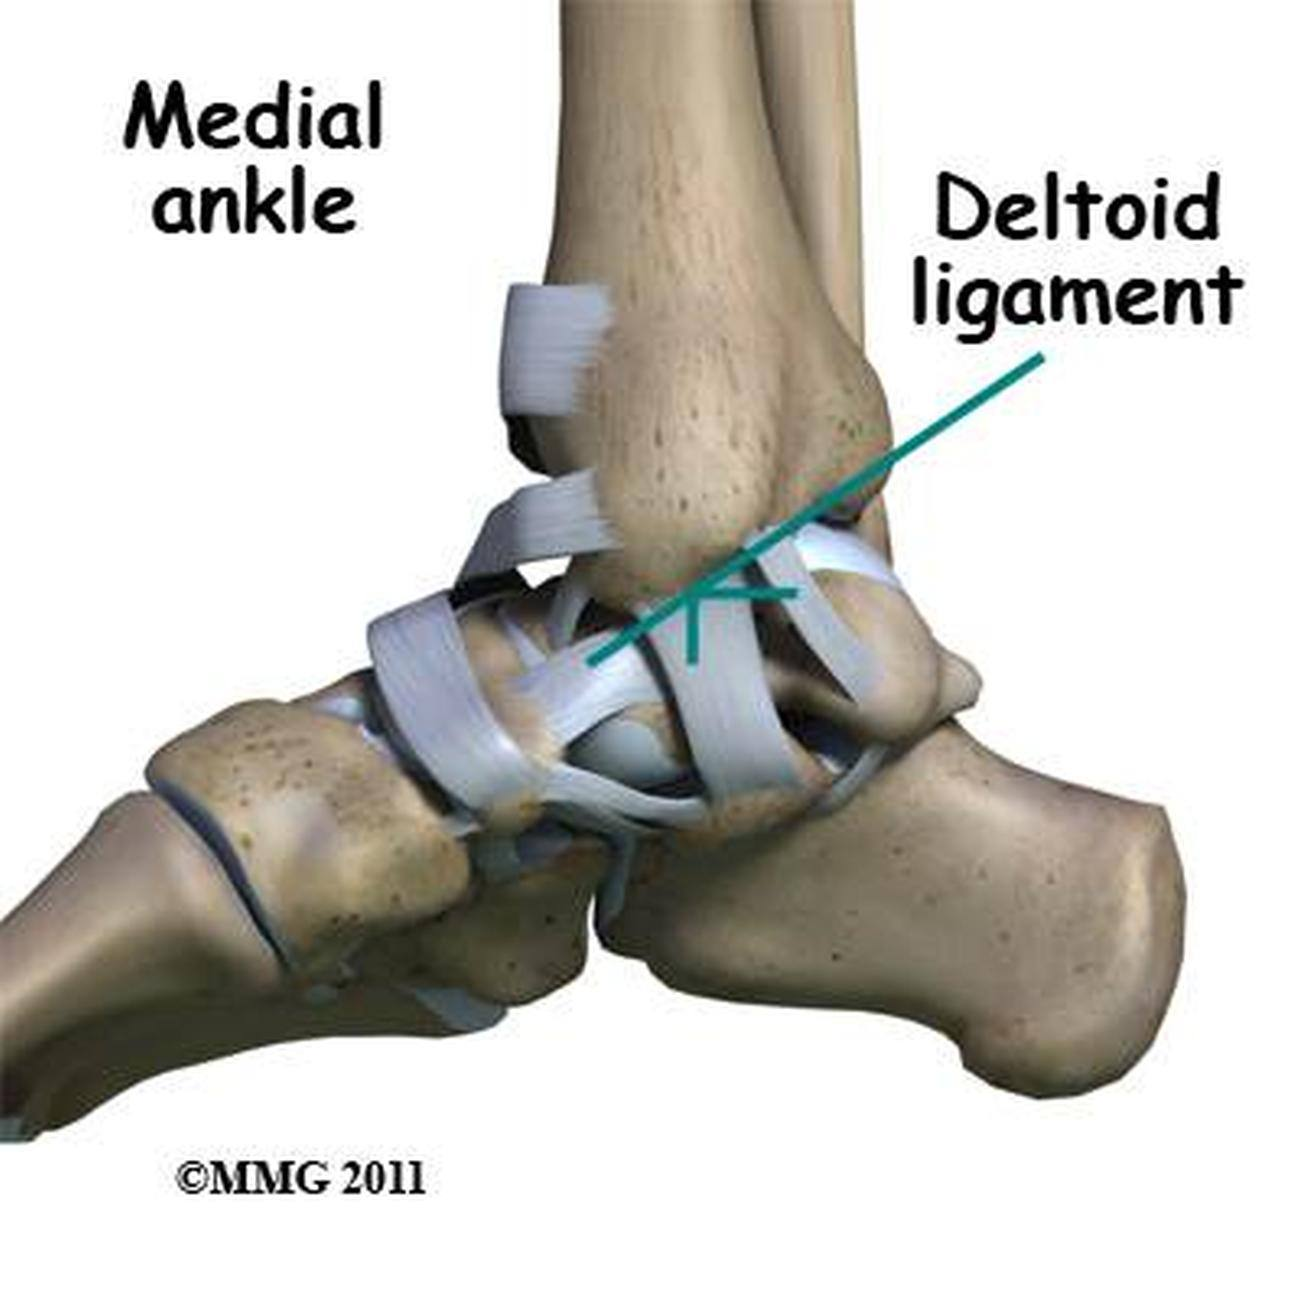 Pictures of ankle ligaments